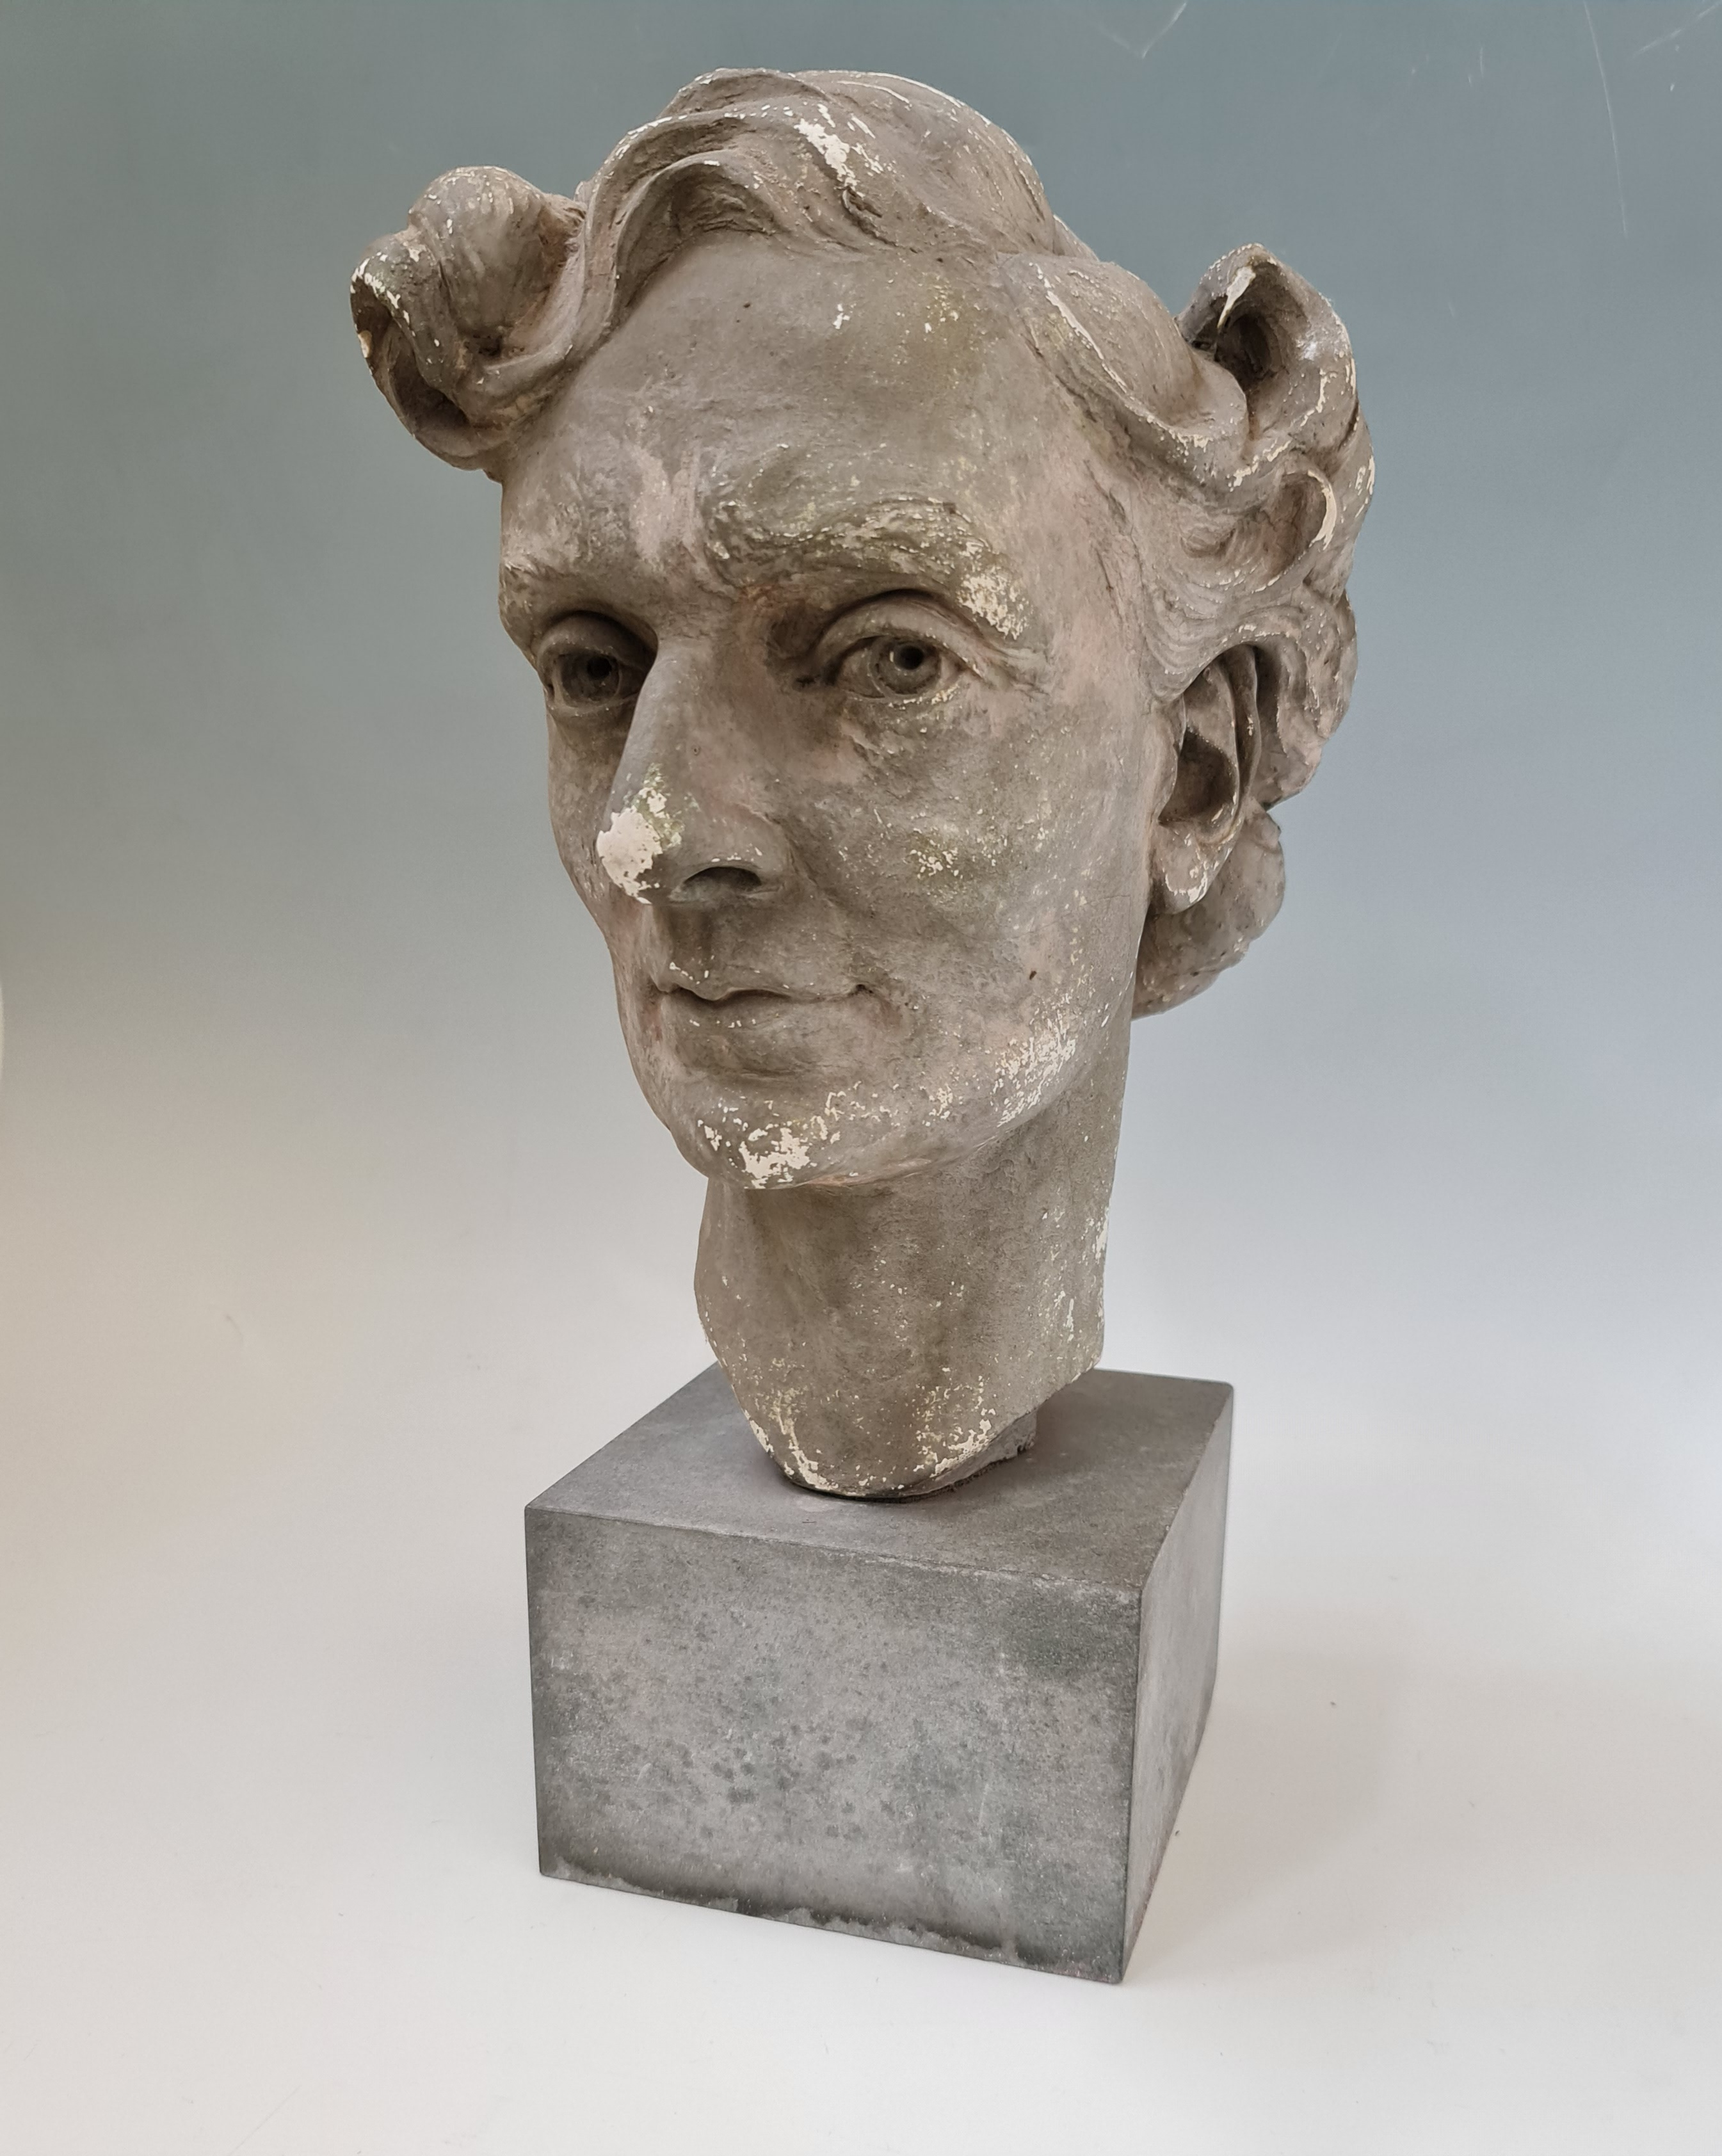 ROY SMITH (R.W.A. Wedgwood sculptor). Signed verso, dated 1946 and titled 'Gretta', plaster